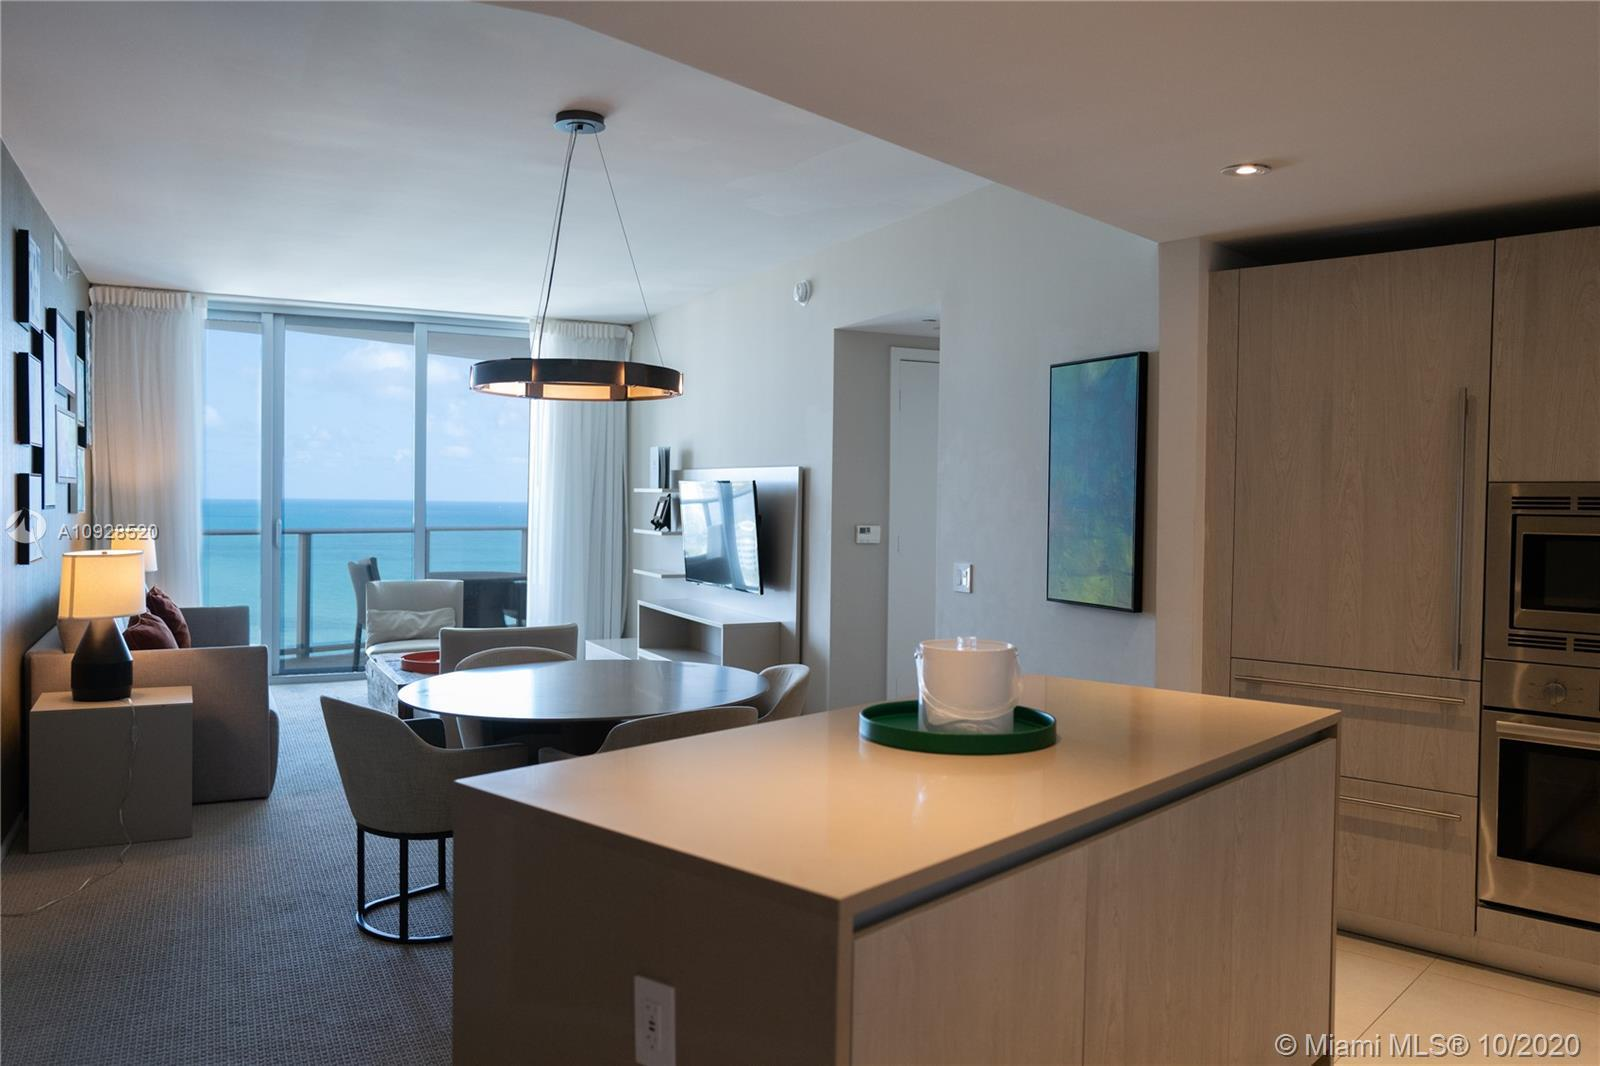 ON THE WATER!!! BRAND NEW 2 BEDROOM AND 2 BATH APARTMENT AT HYDE BEACH RESORT AND RESIDENCES. ENDLES